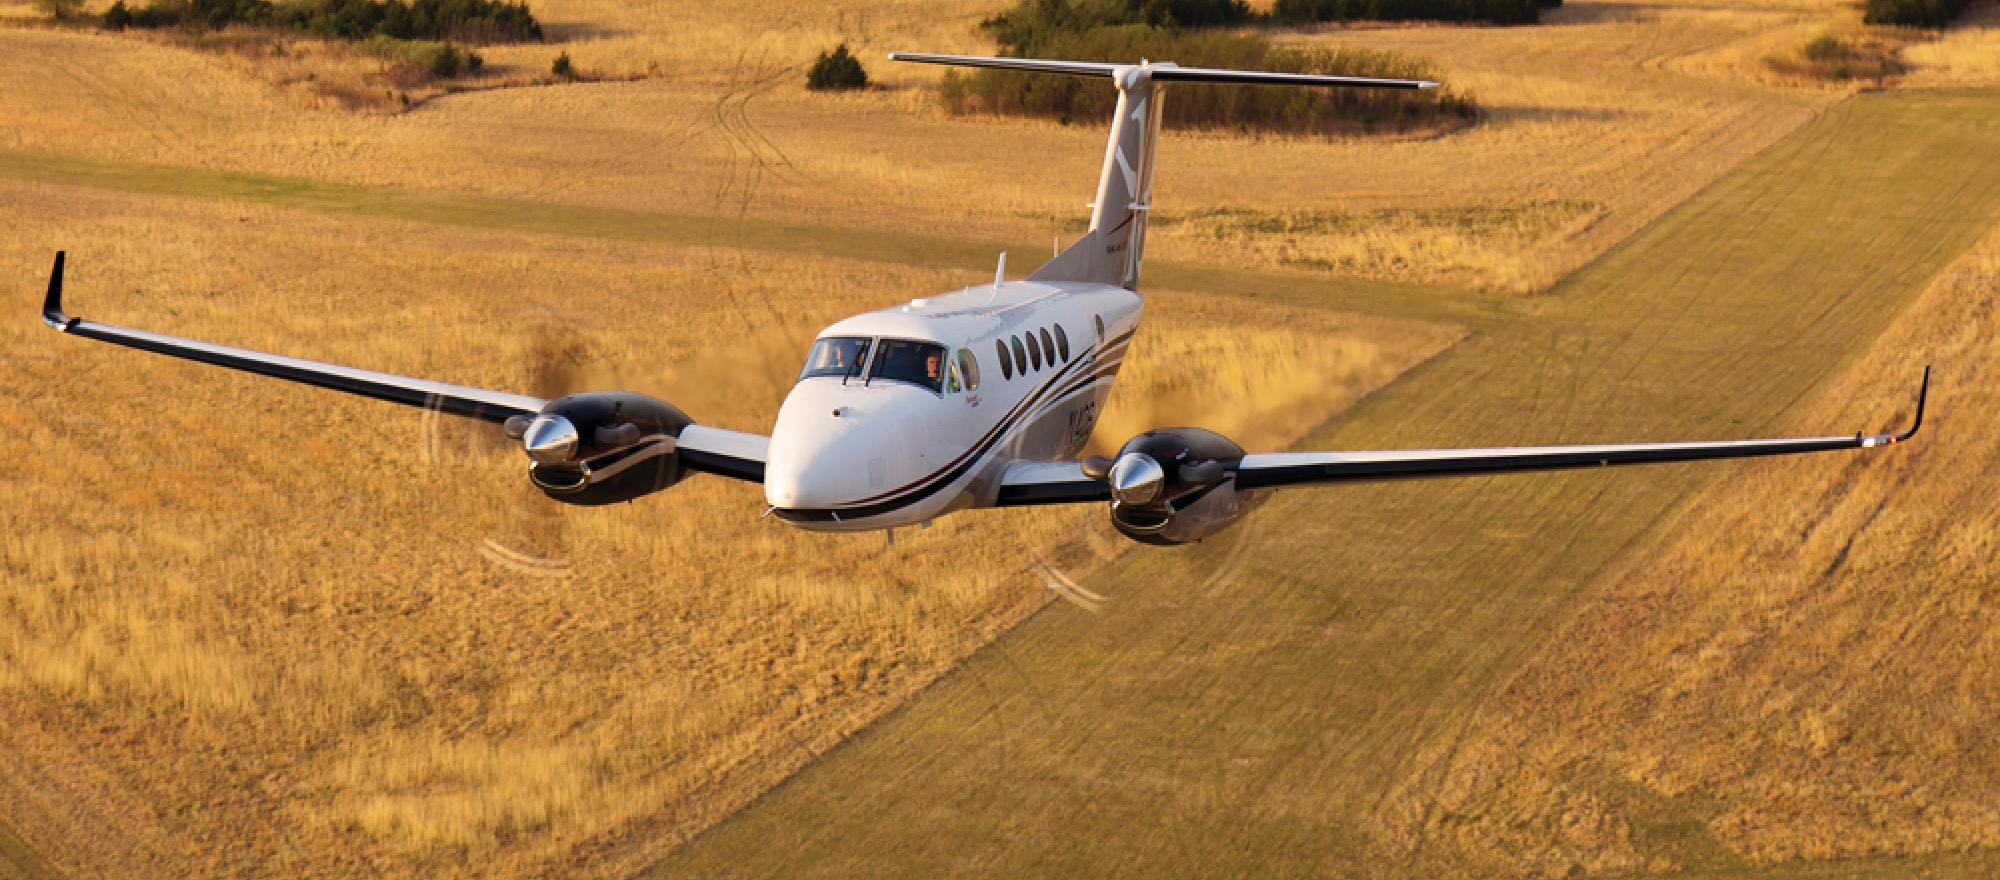 When it comes to matching aircraft with runways, size isn't always the bottom line.